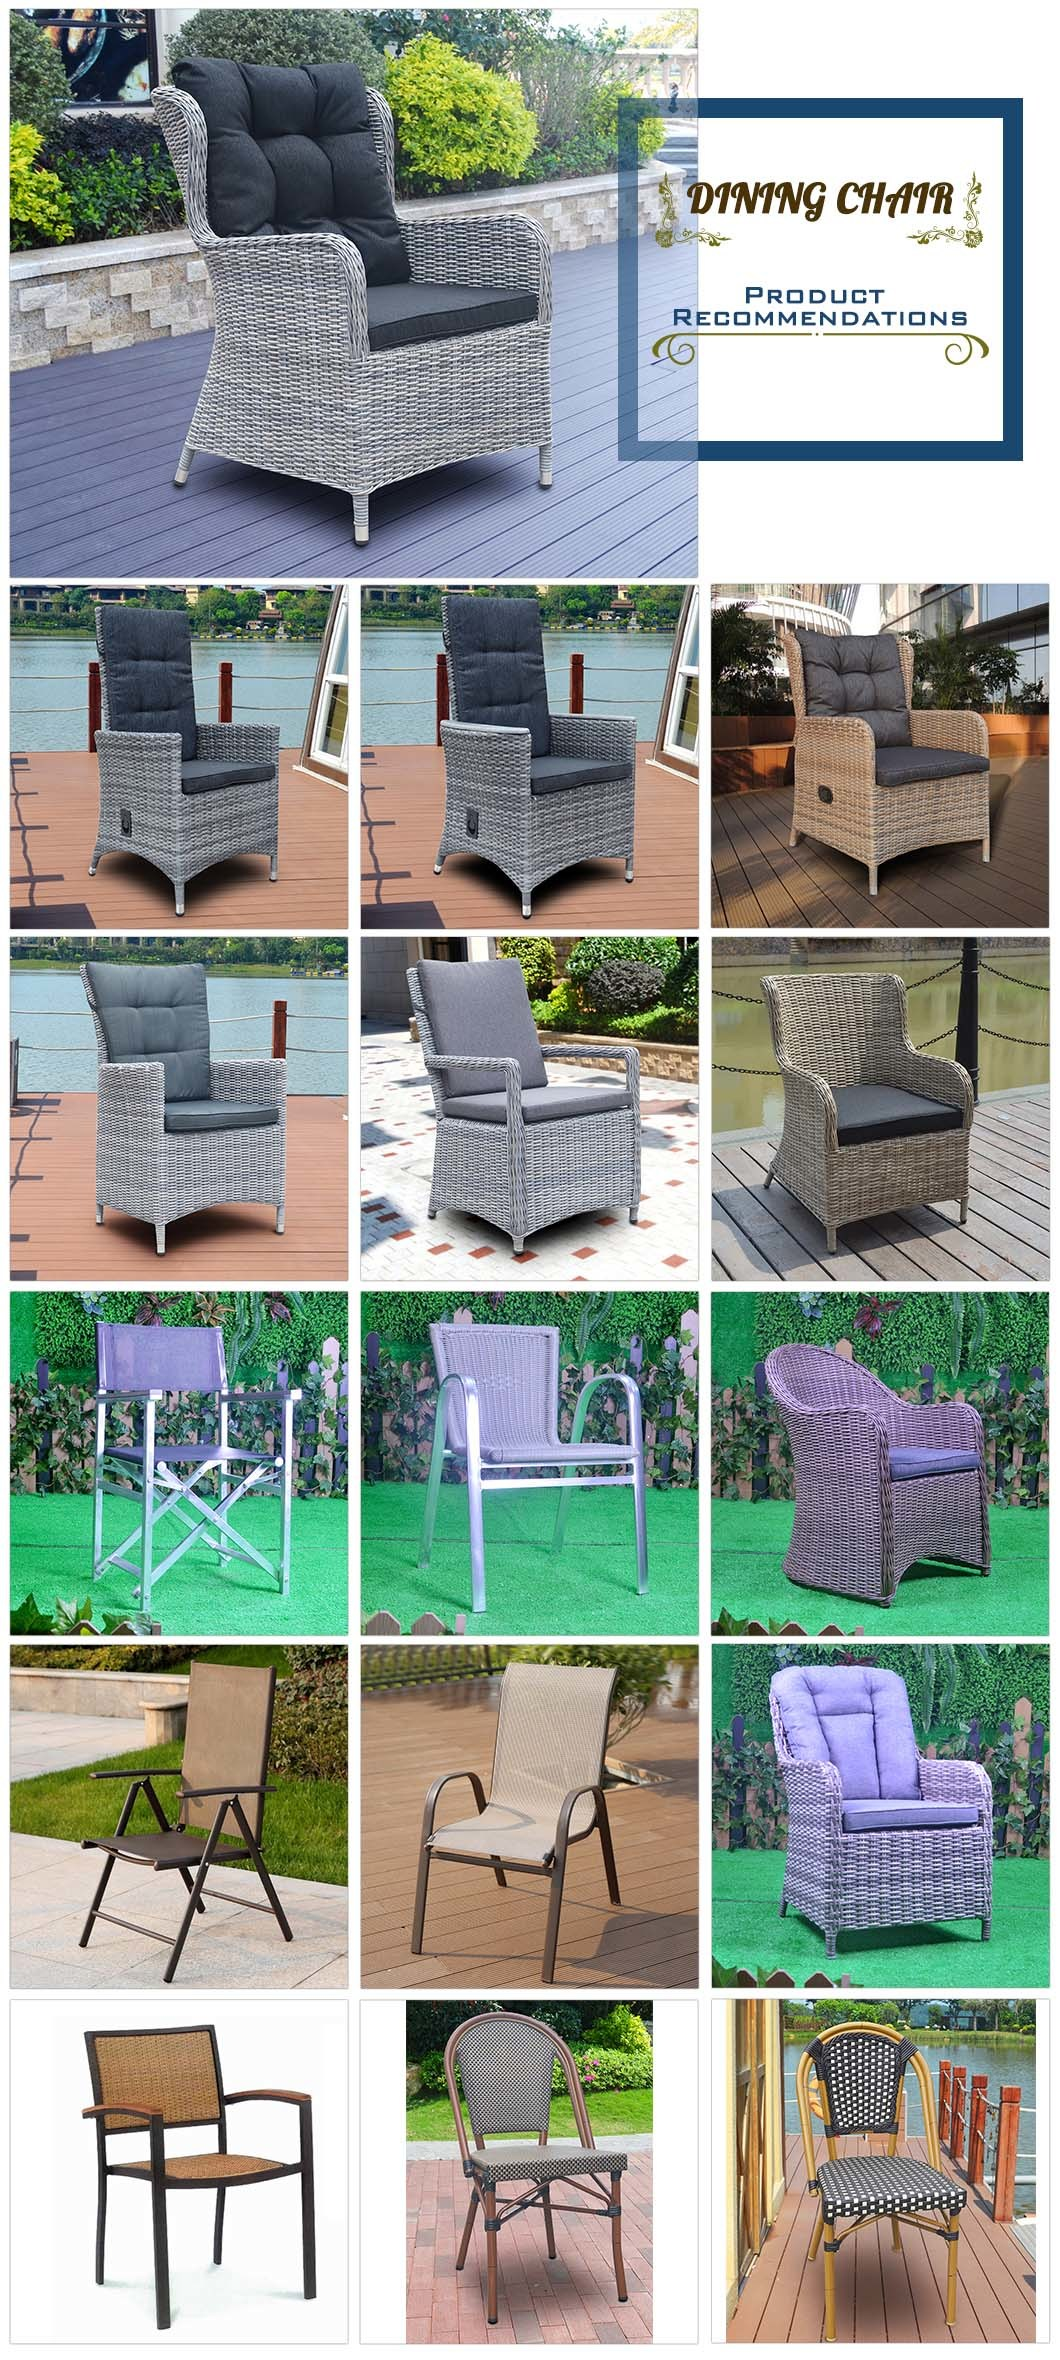 Hot Patio Outdoor Hotel Home Office Modern Garden Wicker Rattan Dining Chair (J5881)